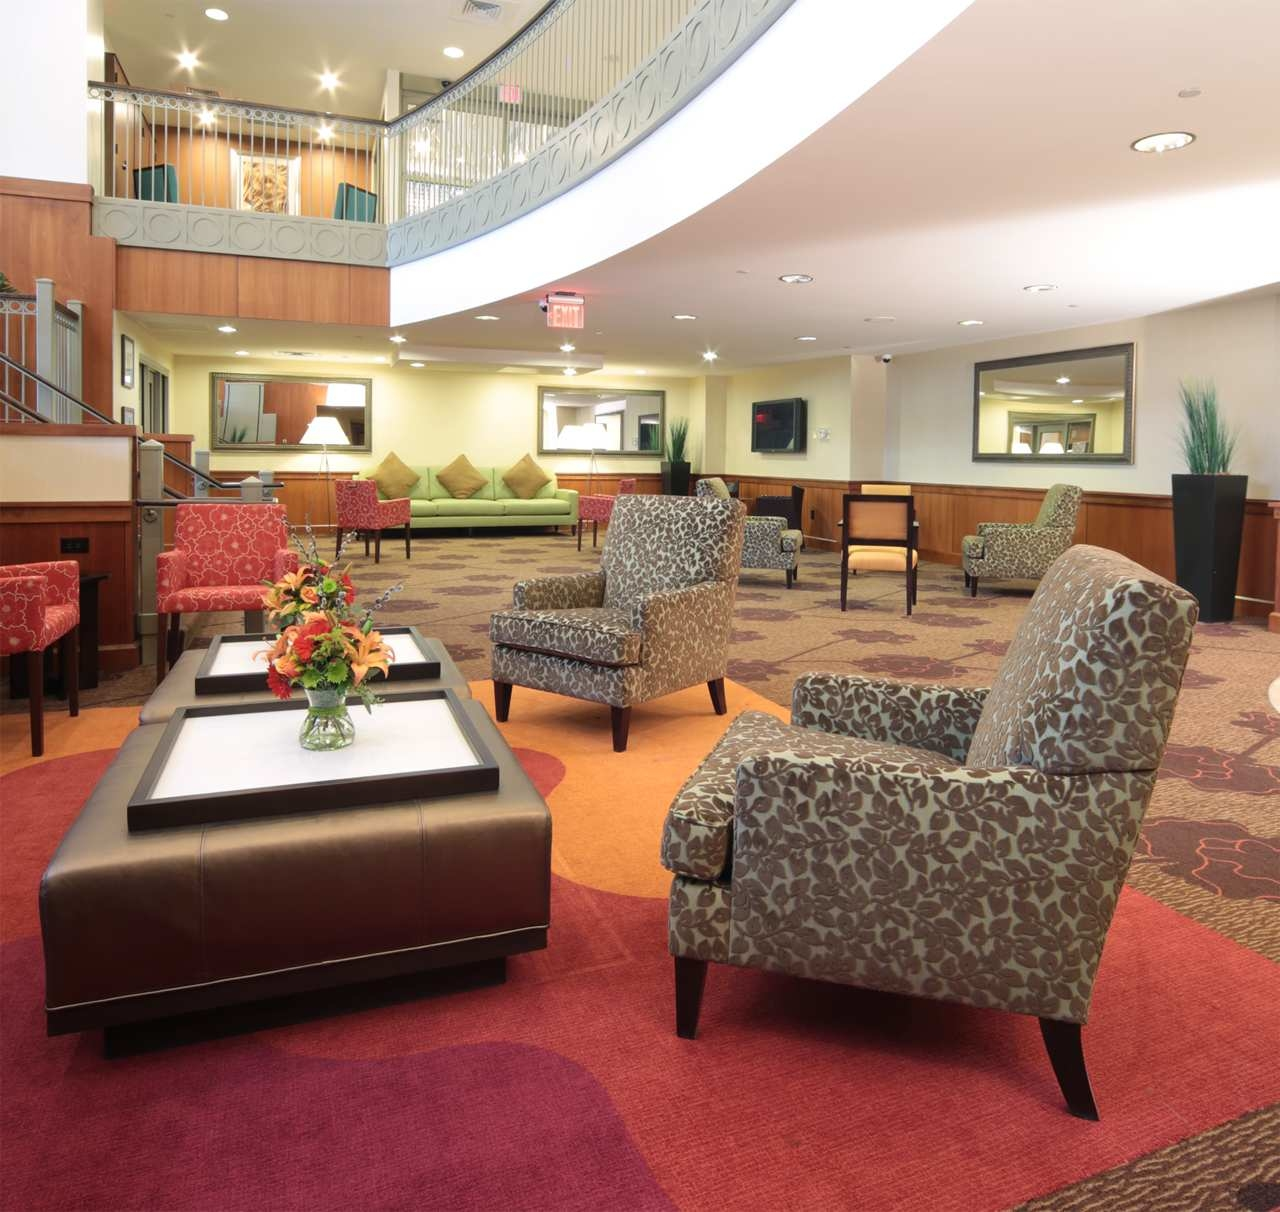 Hilton Garden Inn Pittsburgh University Place At 3454 Forbes Avenue Pittsburgh Pa On Fave